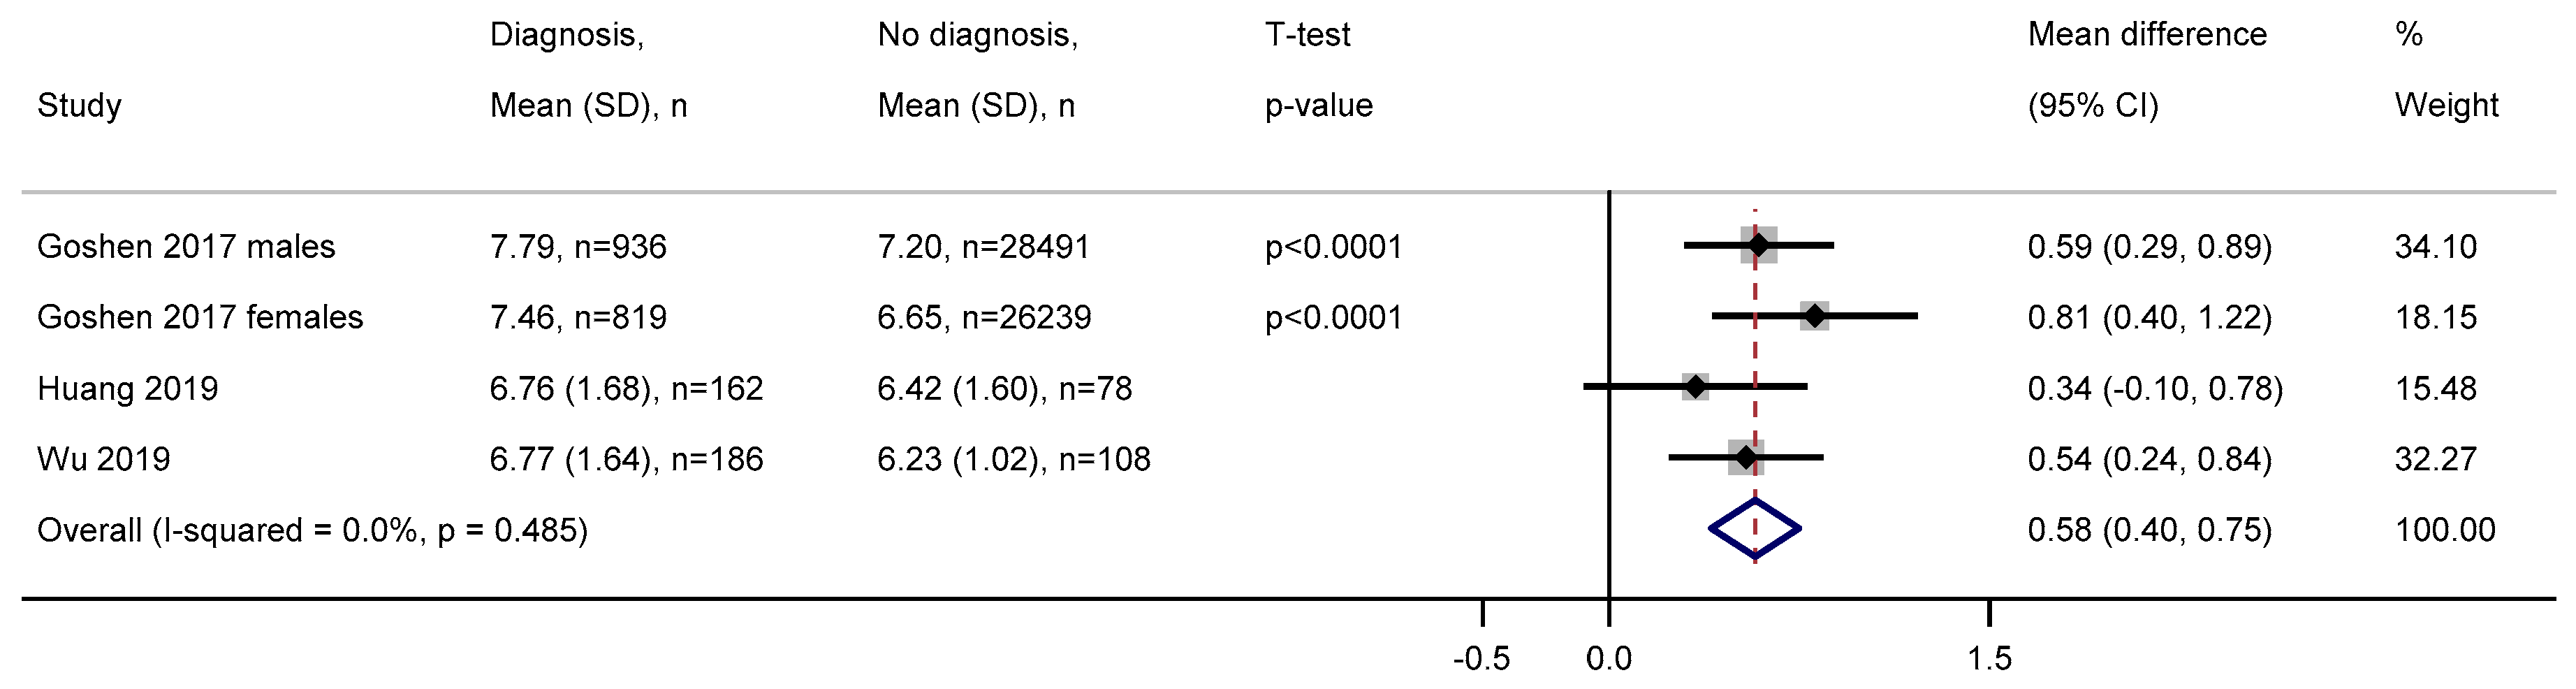 Cancers Free Full Text The Full Blood Count Blood Test For Colorectal Cancer Detection A Systematic Review Meta Analysis And Critical Appraisal Html